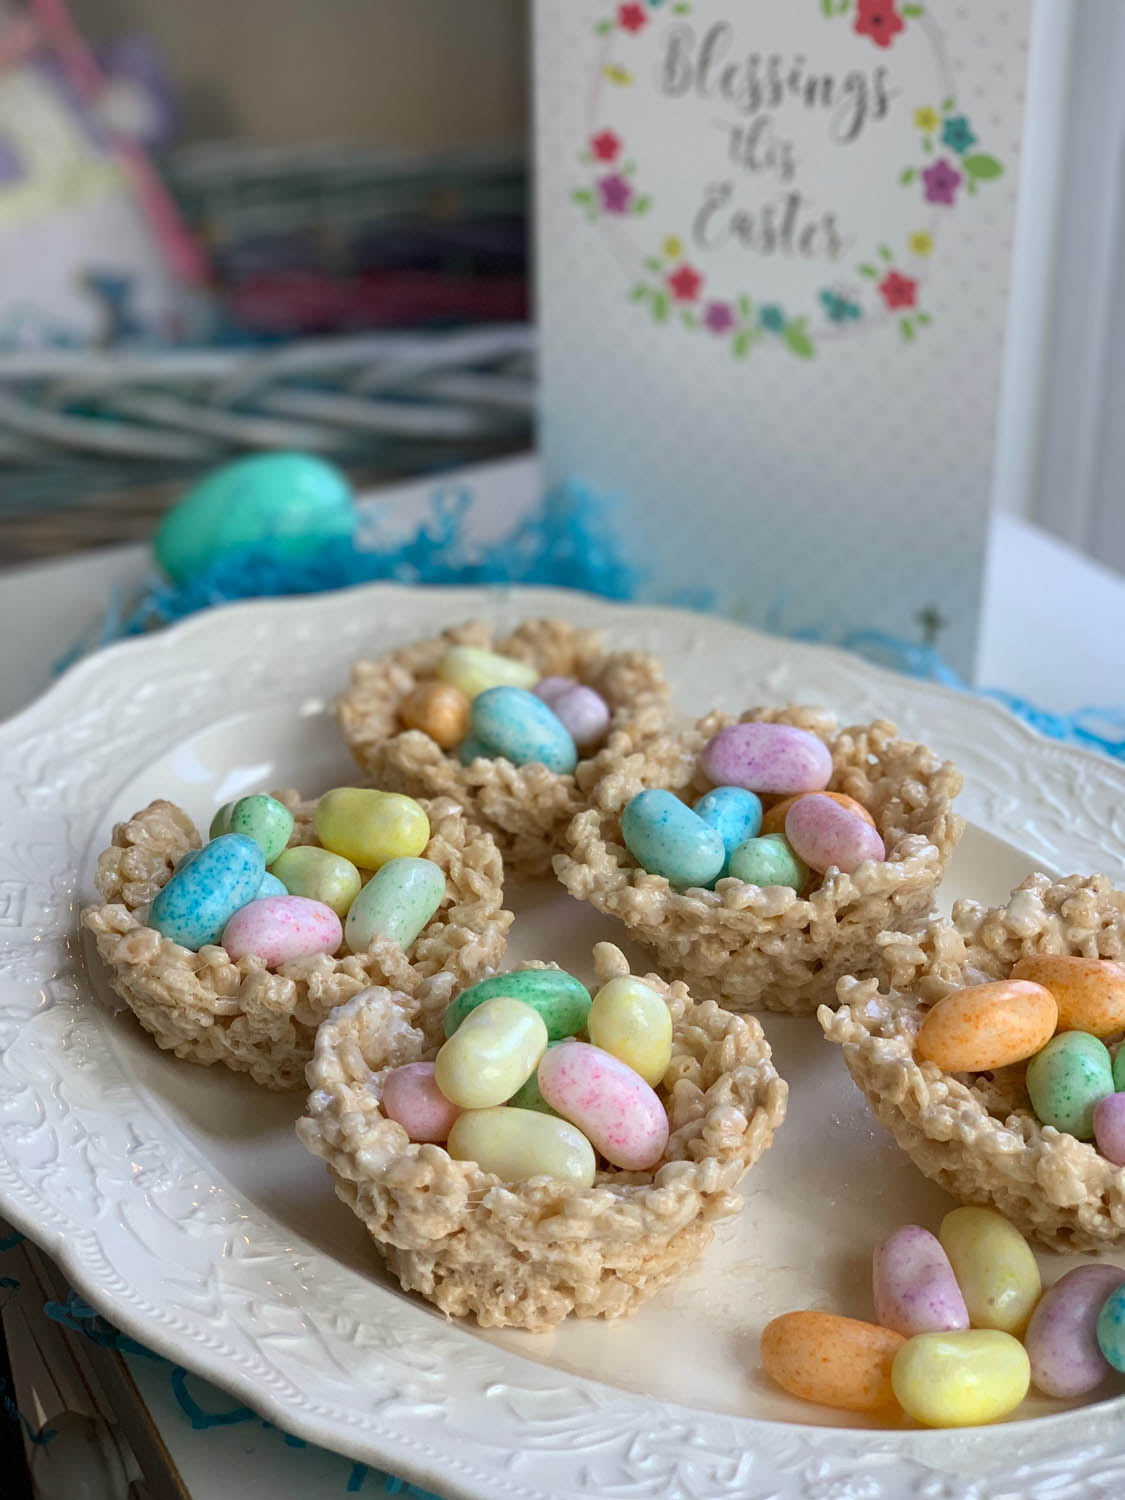 Rice Crispy Treat recipe shaped into nests filled with jelly beans displayed on a white plate with an Easter card